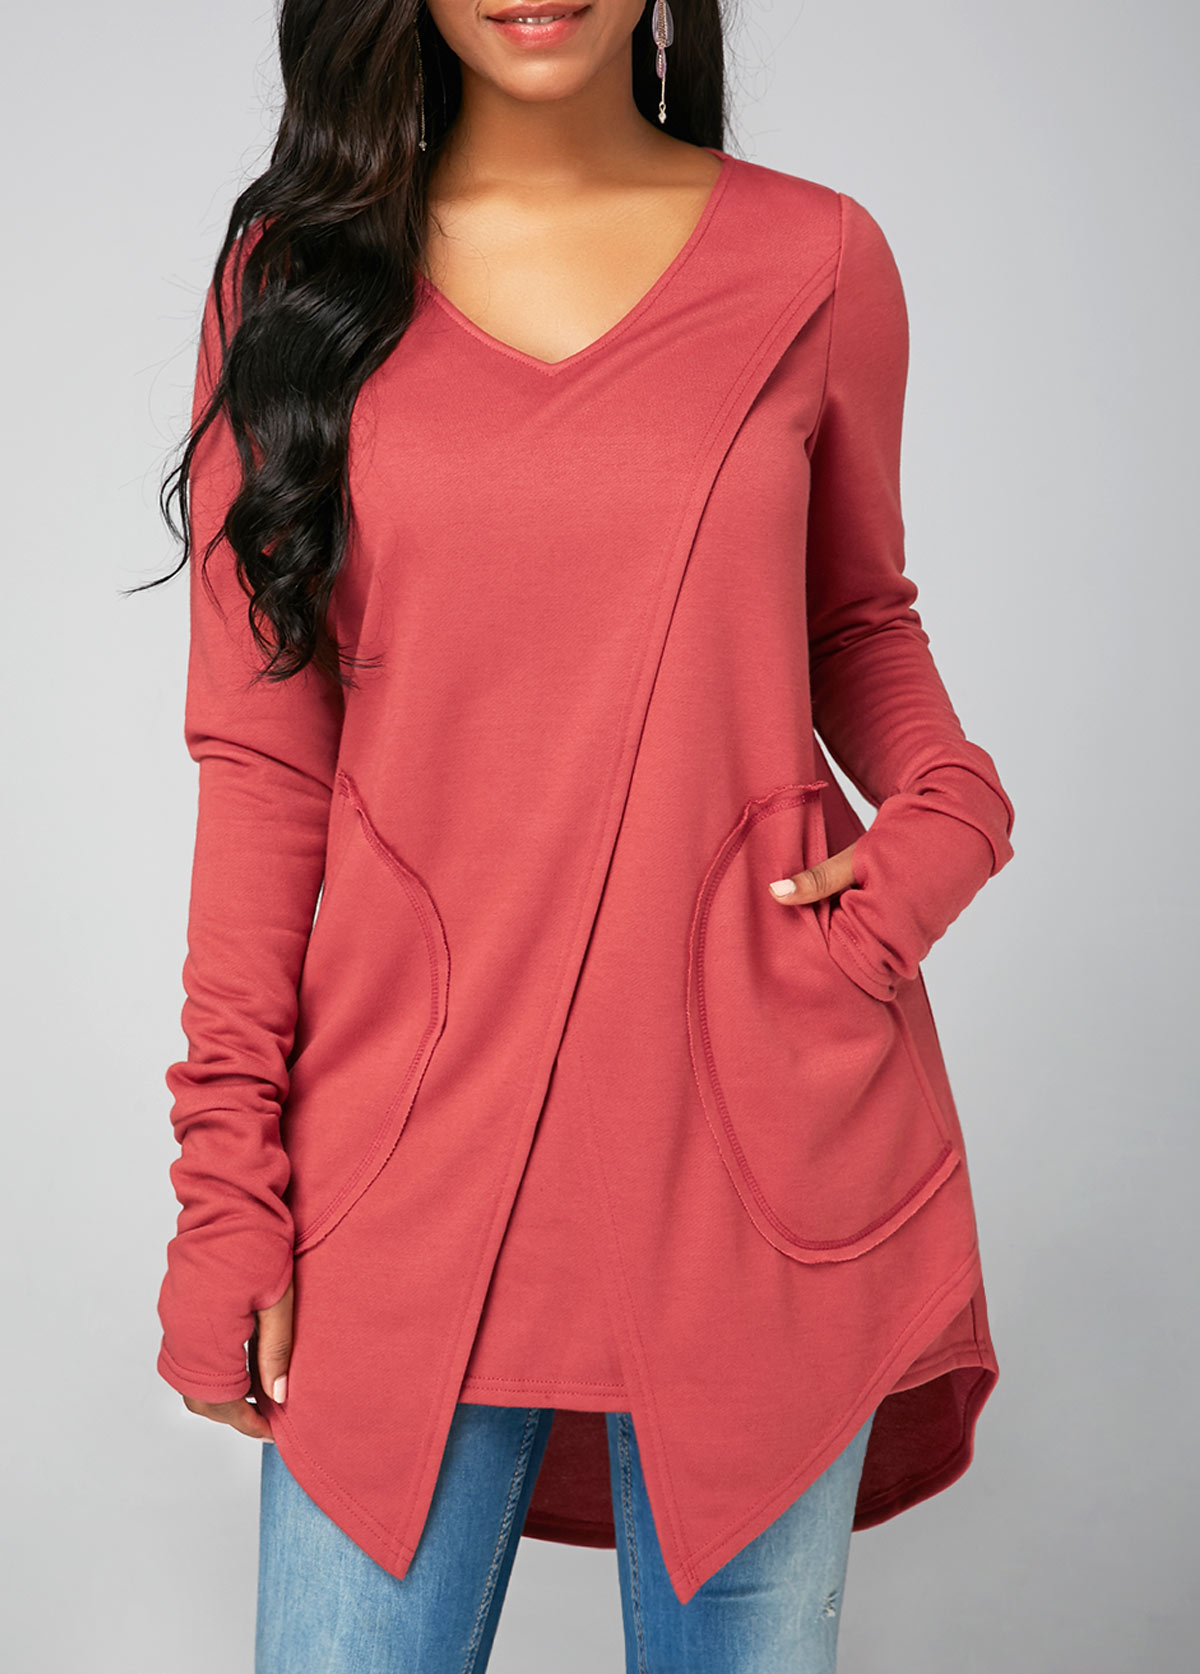 ROTITA Long Sleeve V Neck Pocket Sweatshirt